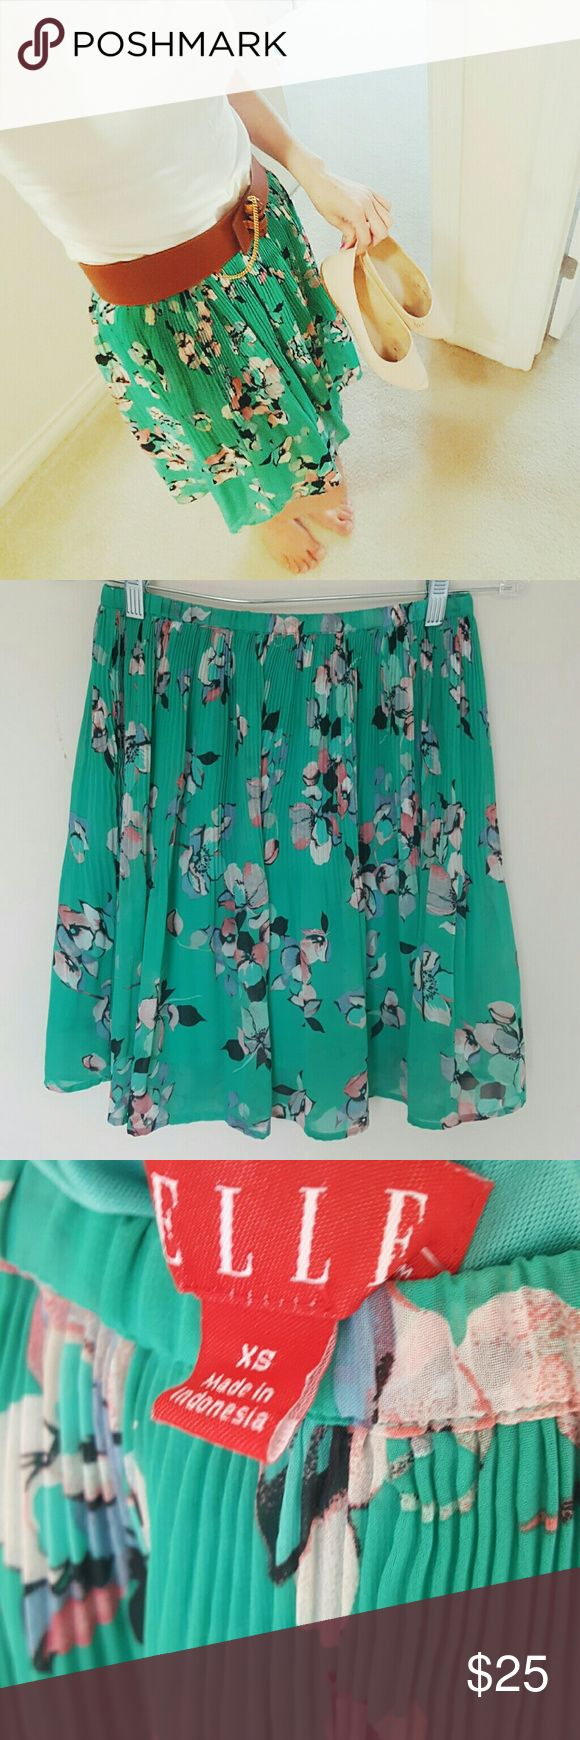 Pleated floral knee length skirt! Xs In excellent condition! Elle pleated floral skirt! On trend for spring and summer! Perfect with pointed toe heals or flats! Knee length. Size xs. I'm usually a 6, and I think this would fit sizes 2,4, and 6.  Bundle using the bundle feature and save! Elle Skirts